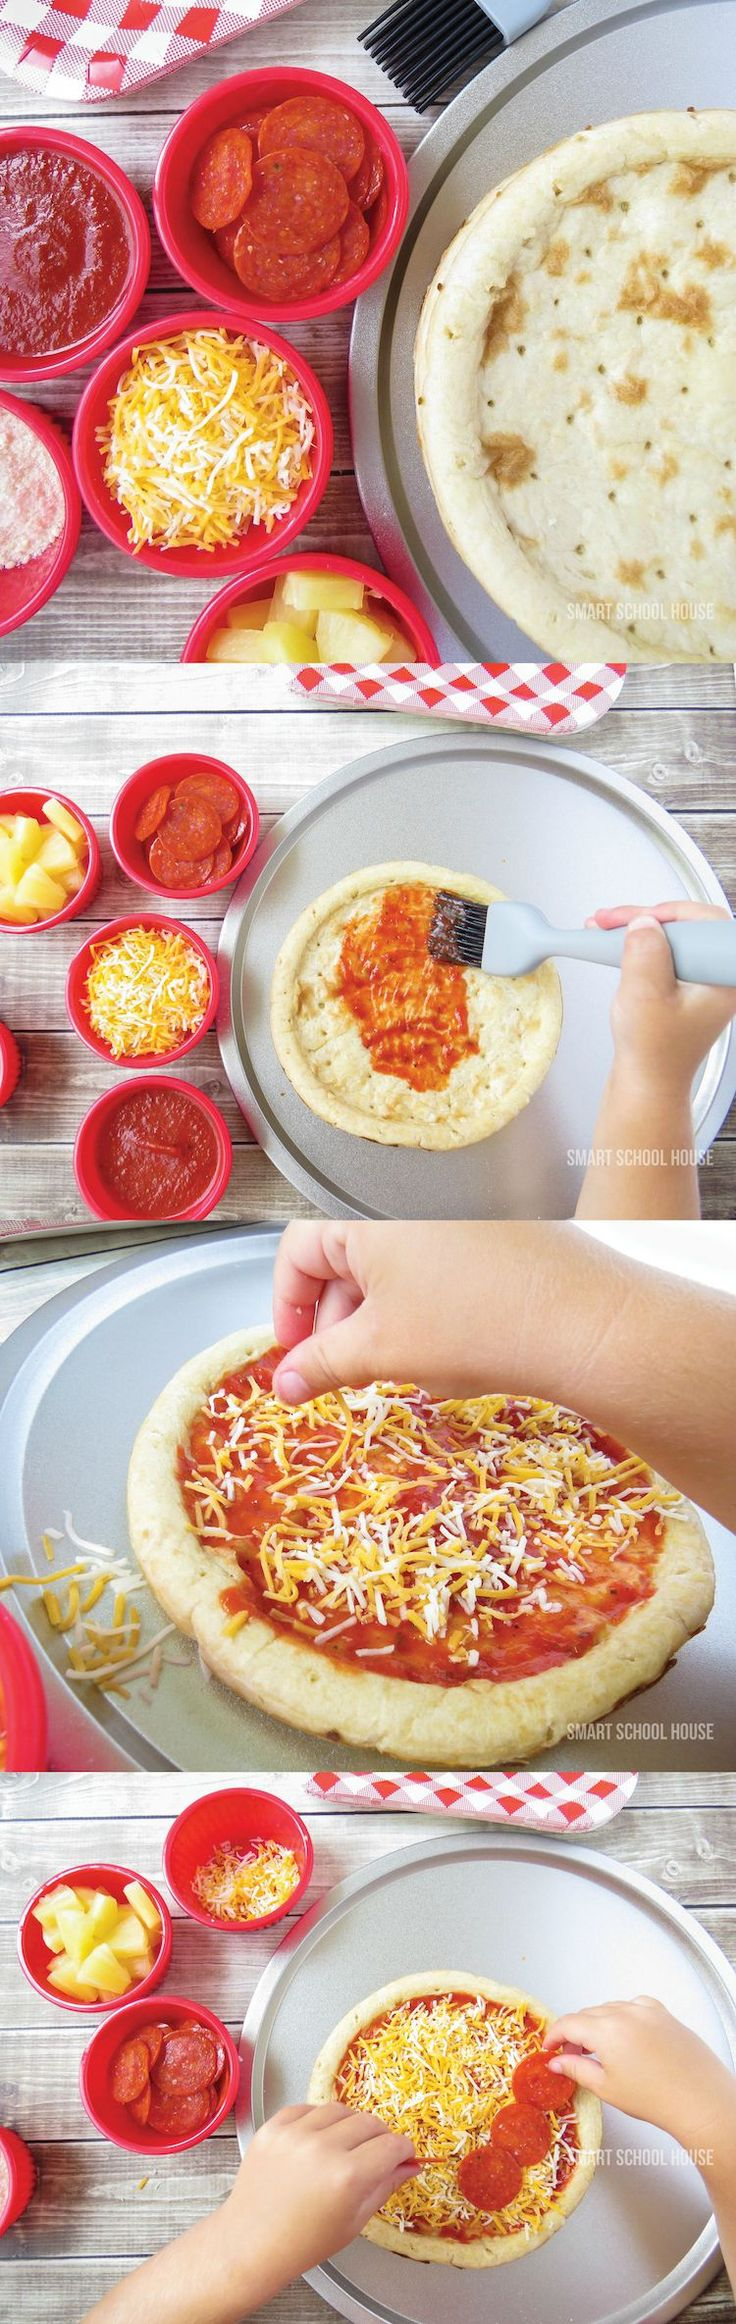 Your kids and their friends will love putting together their very own flavor combinations with this awesome Pizza Bar. Your kiddos can choose to top their pizza with cheese, vegetables, pepperoni, or other favorite toppings. Make sure you keep Bounty Paper Towels nearby to battle messes and spills, which are bound to happen with cooking activities for kids.